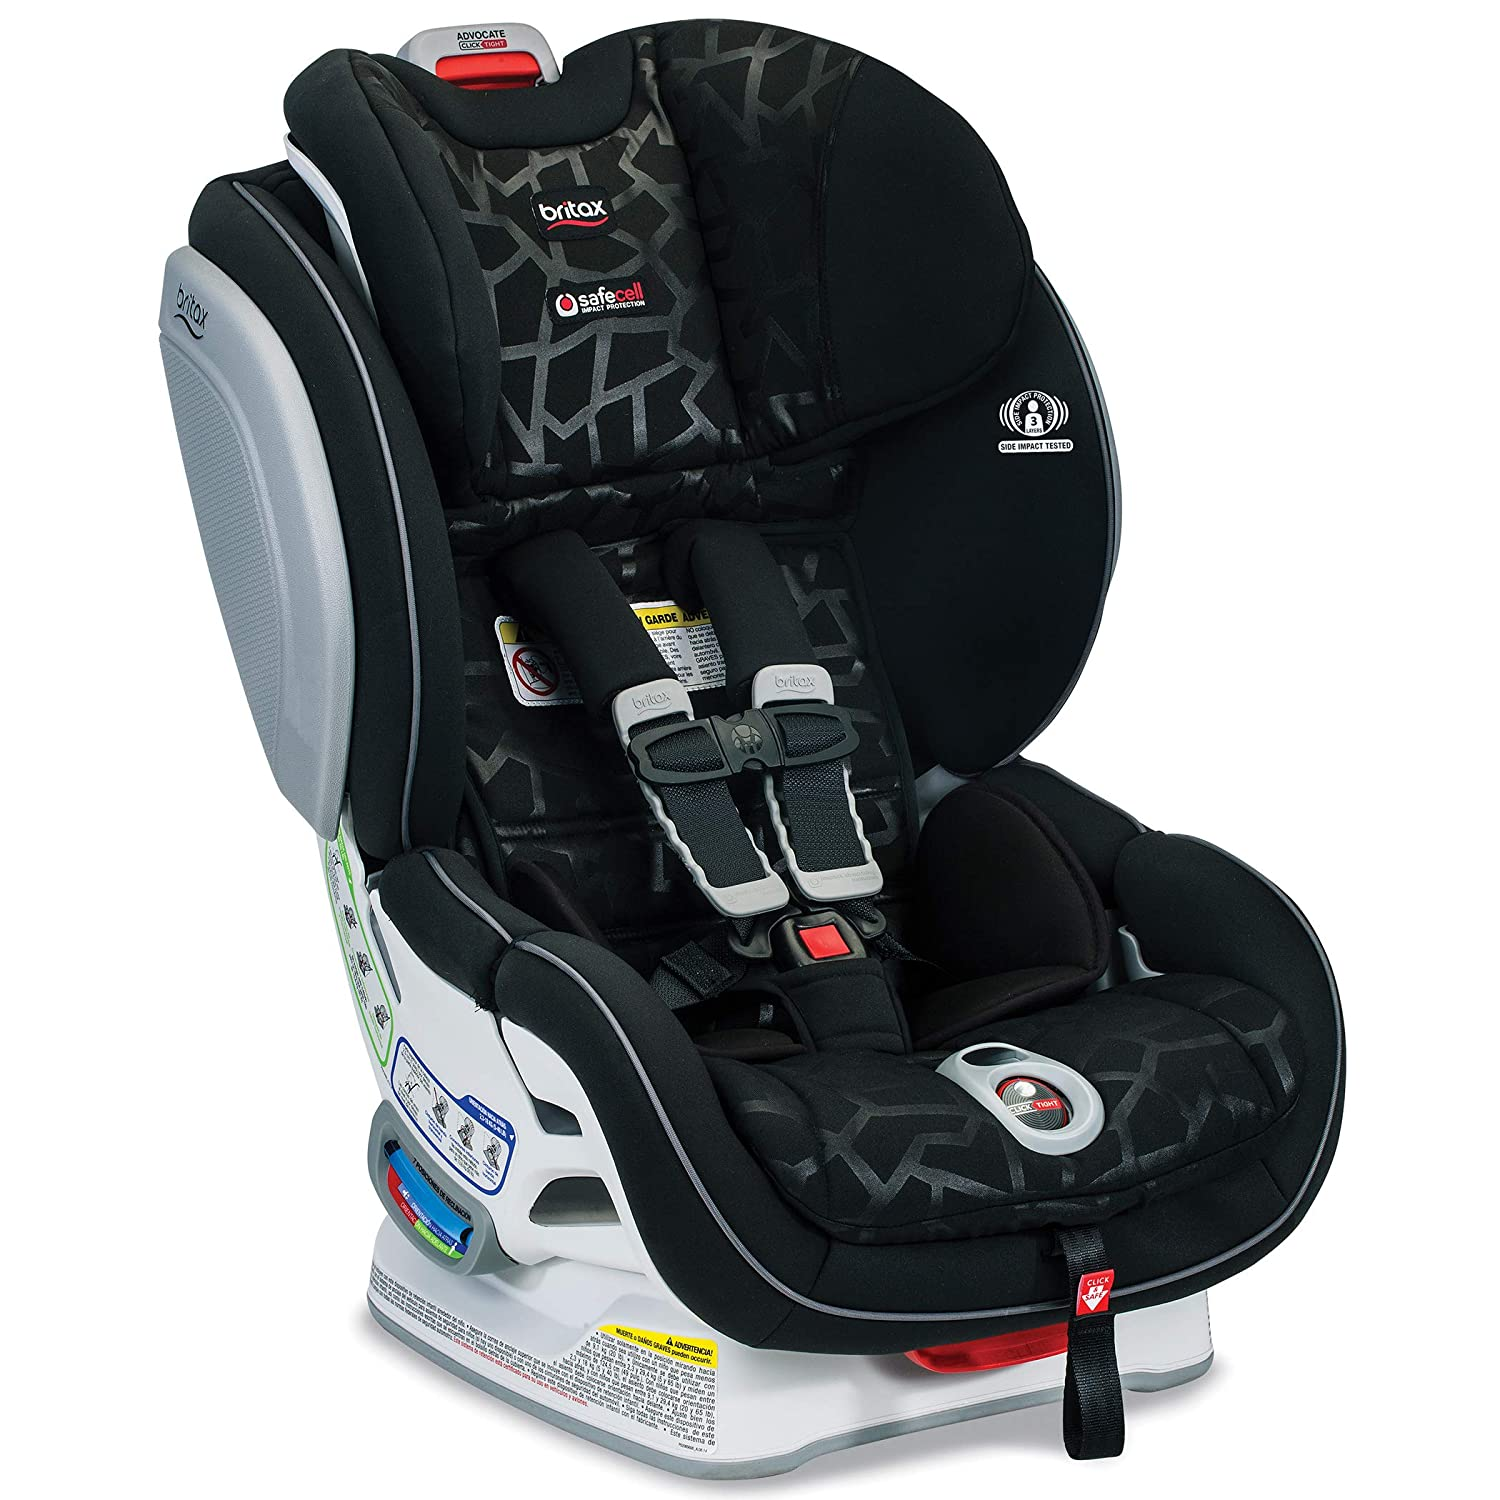 B01N10RCX2 Britax Advocate ClickTight Convertible Car Seat - 3 Layer Impact Protection - Rear and Forward Facing - 5 to 65 Pounds, Mosaic 81Ym5INPUyL